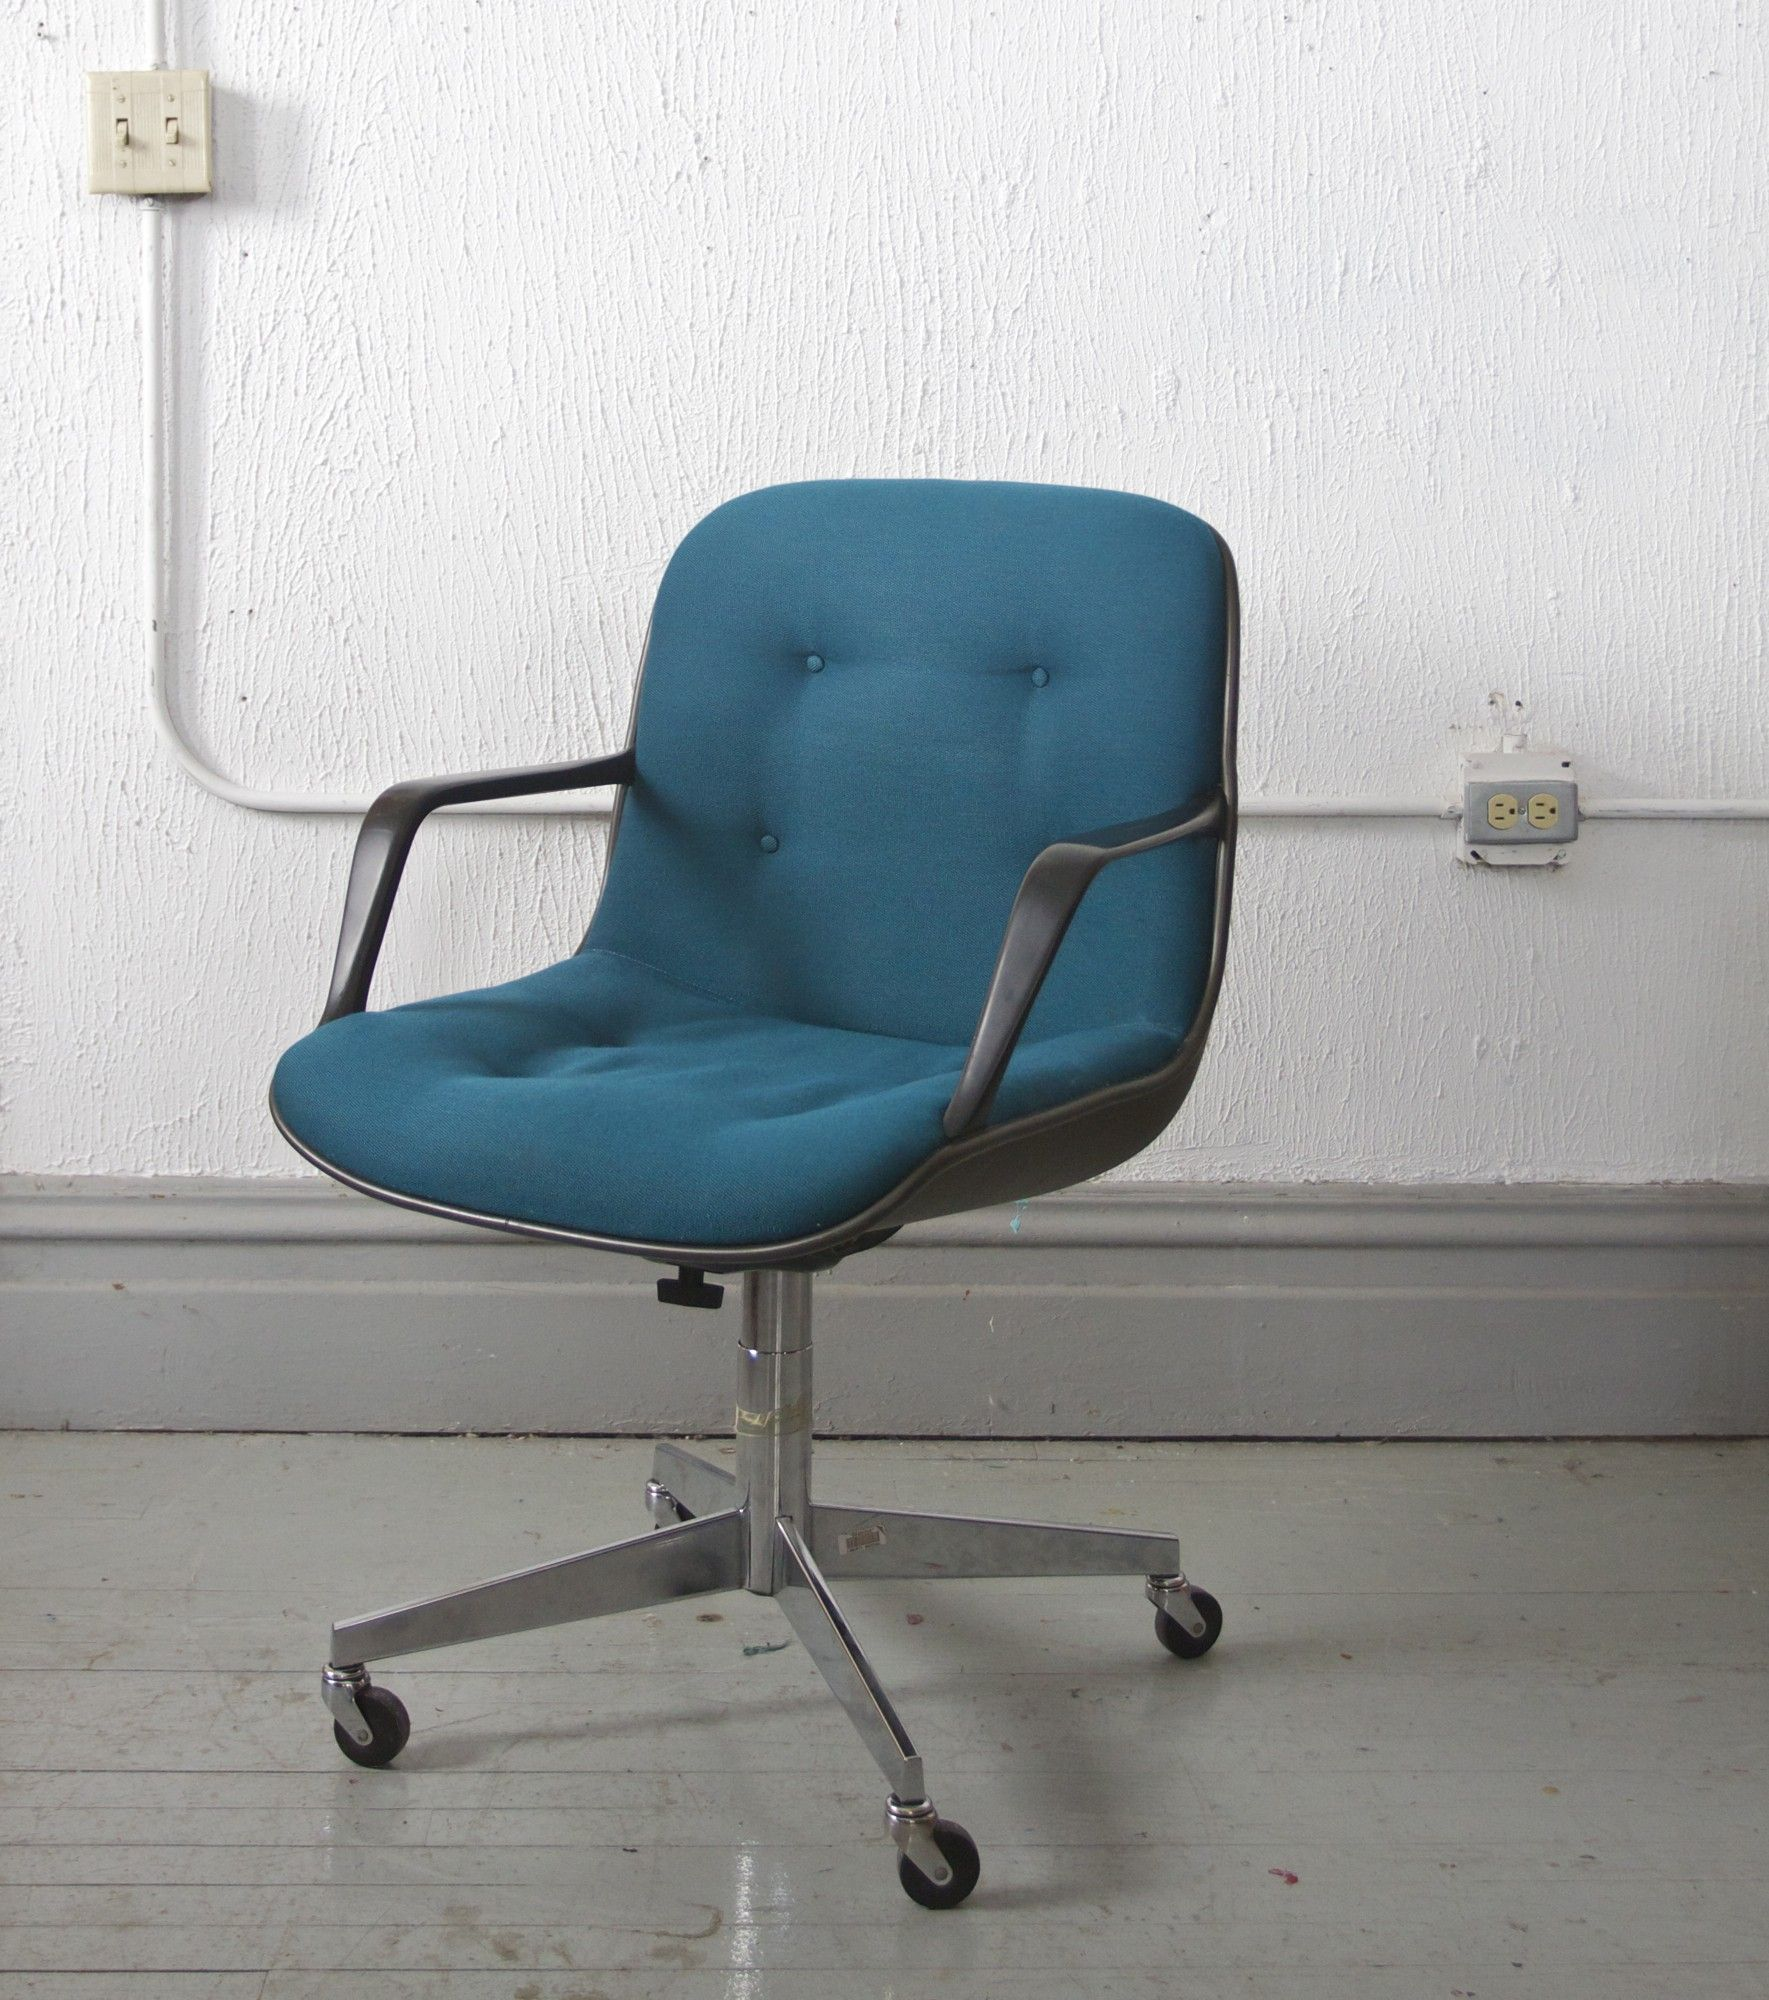 Office chair vintage Metal Frame Vintage Steelcase Office Chair 125 Chicago Httpfurnishlycomcatalog Pinterest Pin By Furnishlycom On Chicago Listings Pinterest Chair